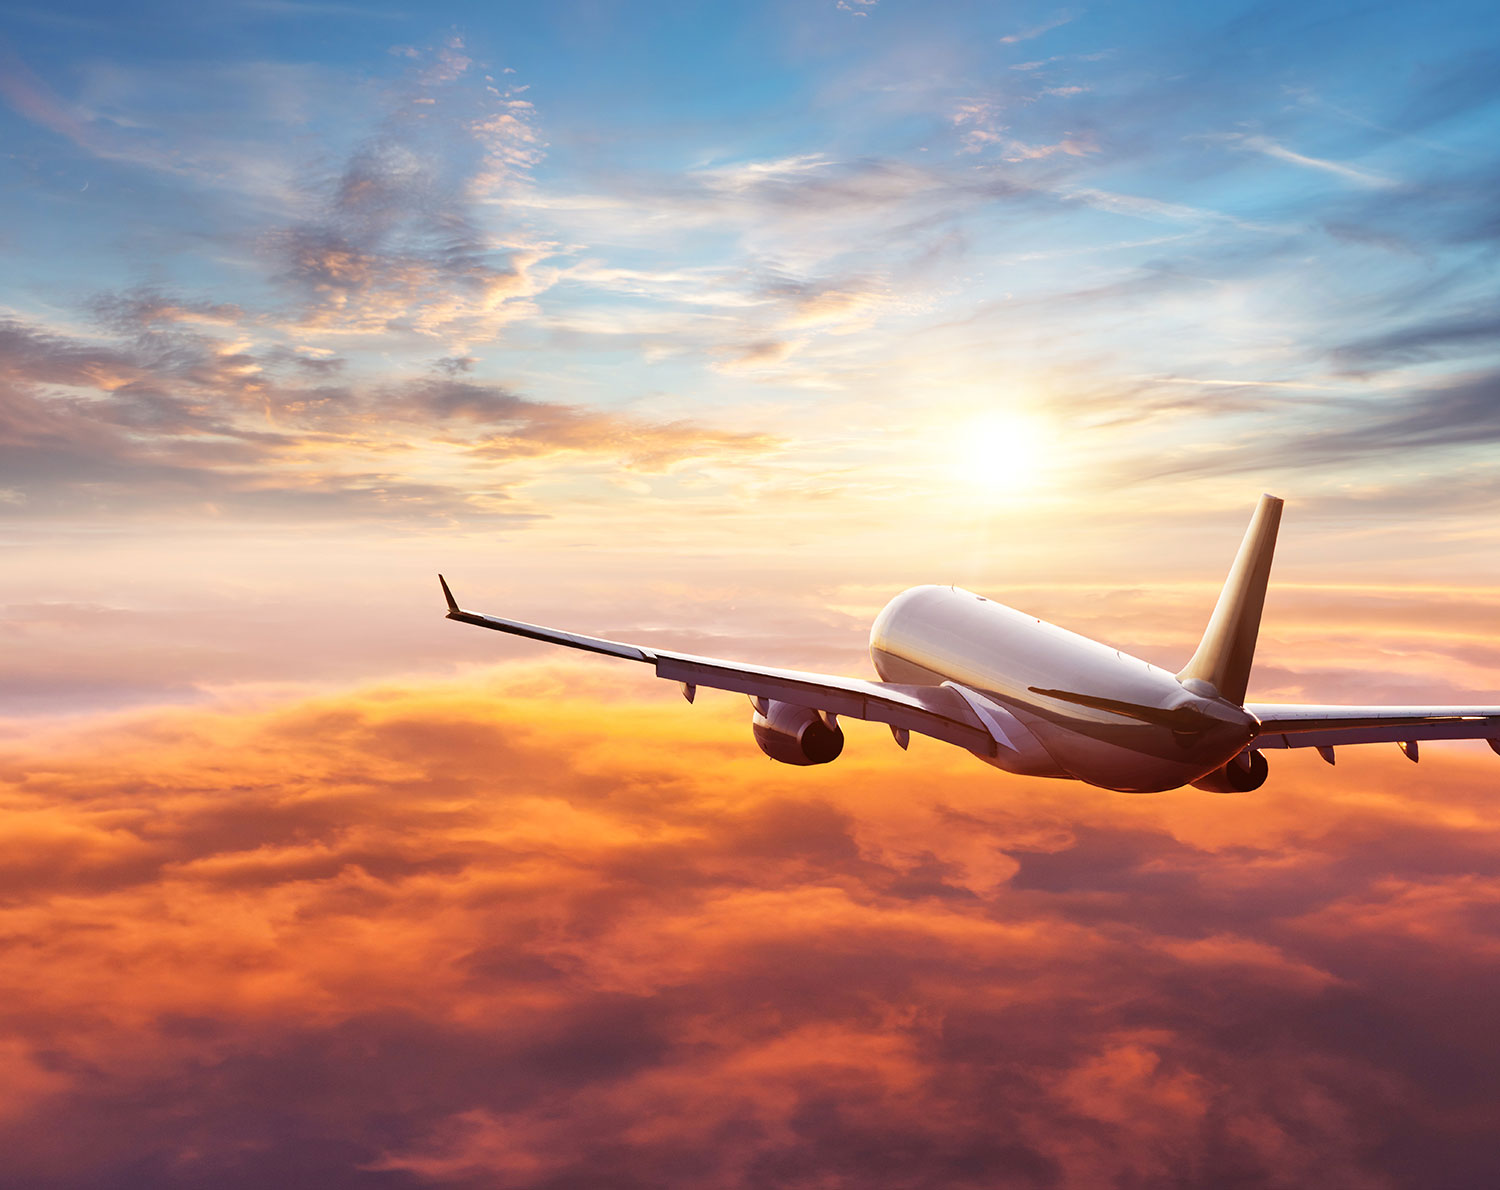 Aeroplane flying above the clouds in a sunset – global payroll services. Our international payroll services and FX payment products provide businesses with a convenient way to pay their staff and suppliers worldwide.